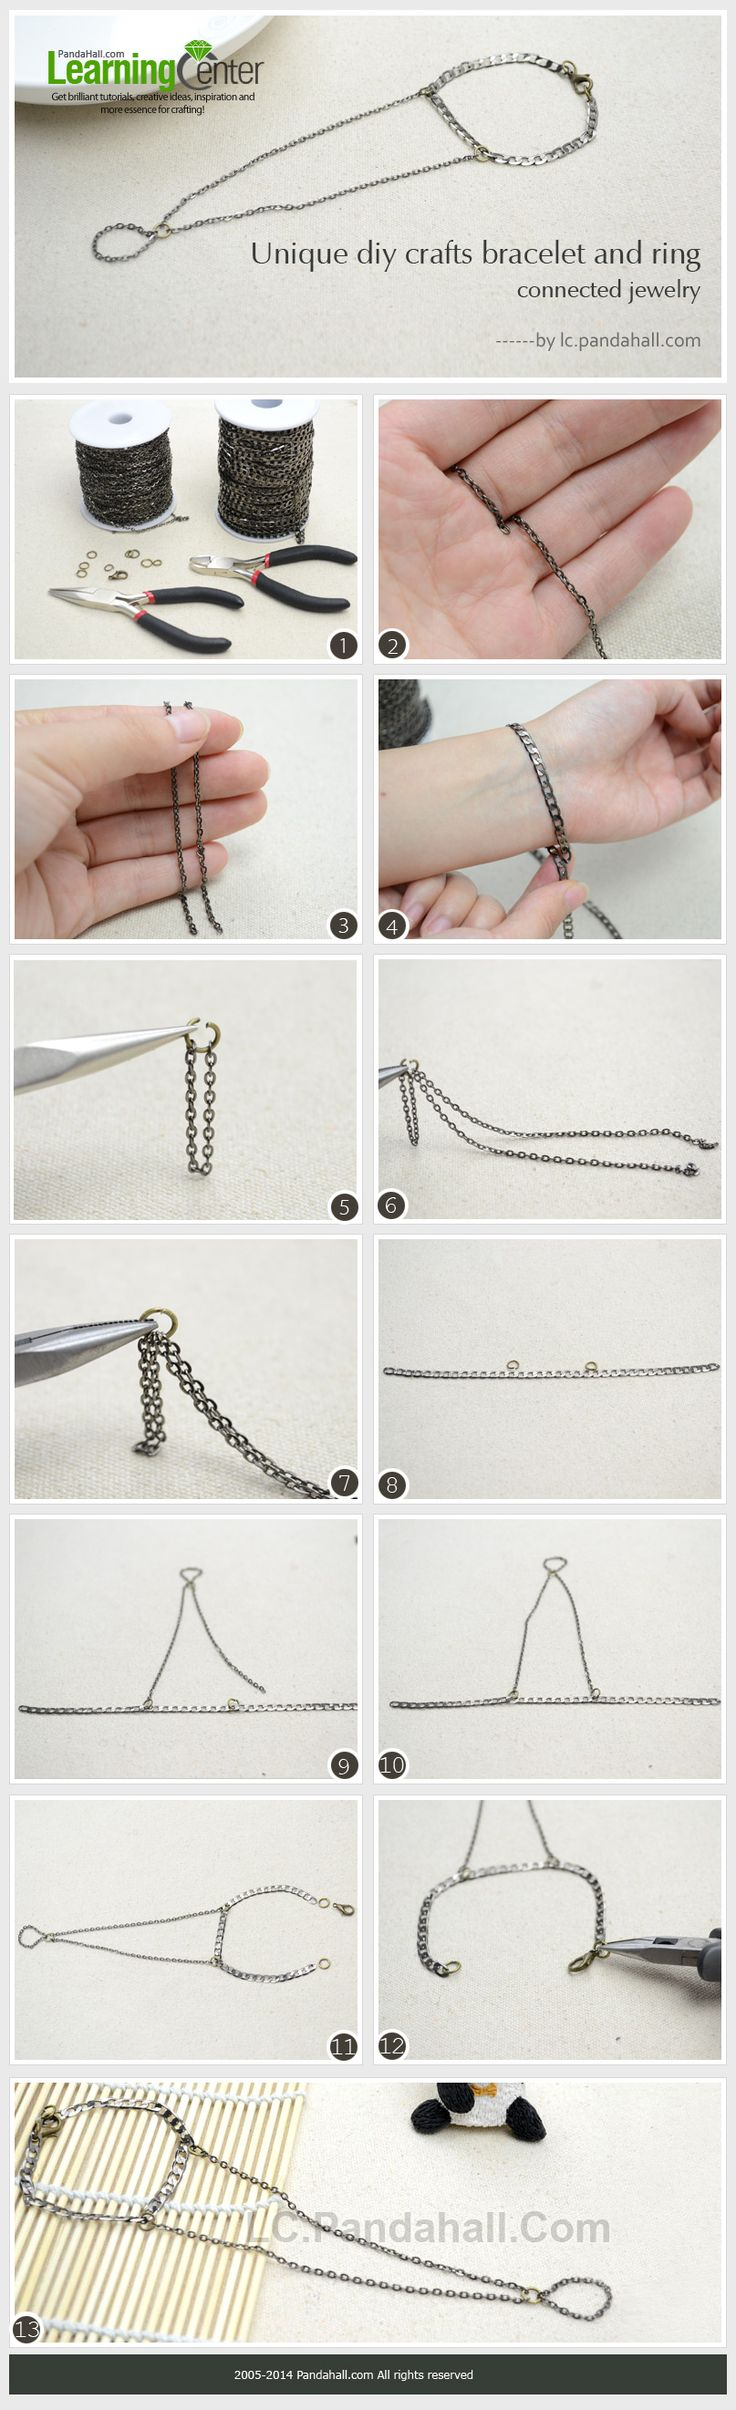 Slave Bracelet DIY - How to make a Bracelet and Ring Connected Jewelry with Chain